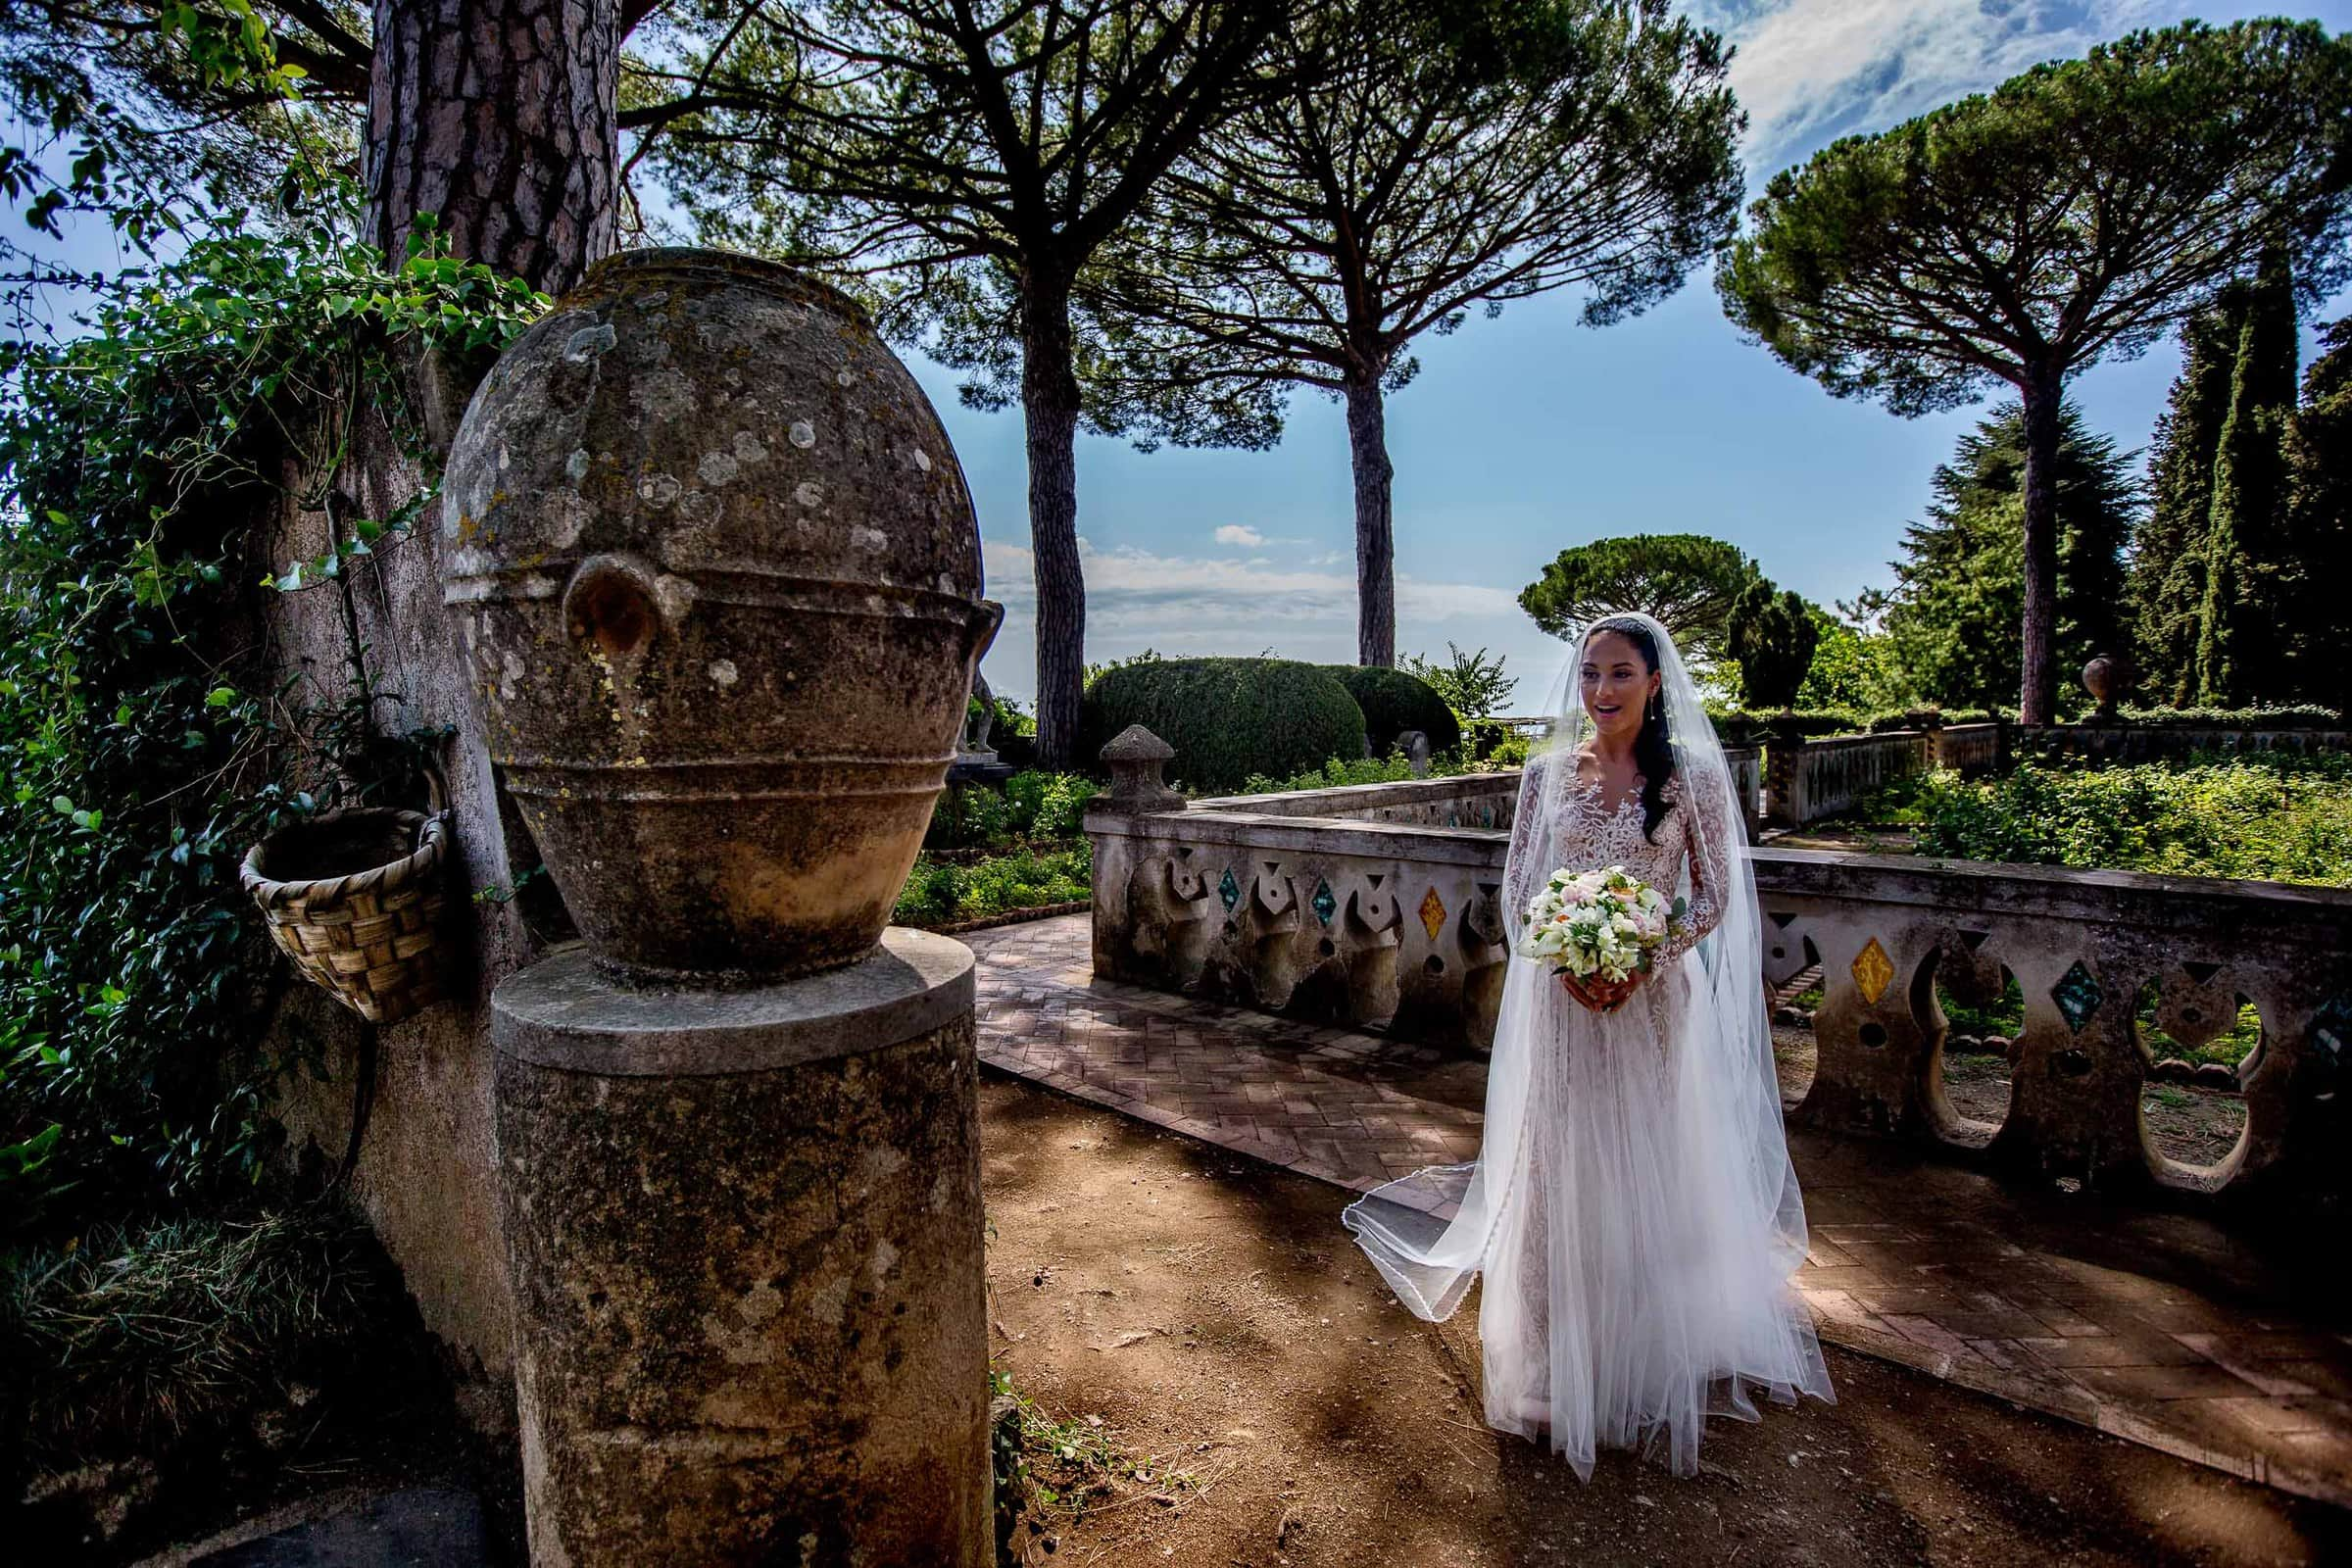 Stunning bride walking into her elopement ceremony during her Ravello elopement at Villa Cimbrone along the Amafi coast in Italy.